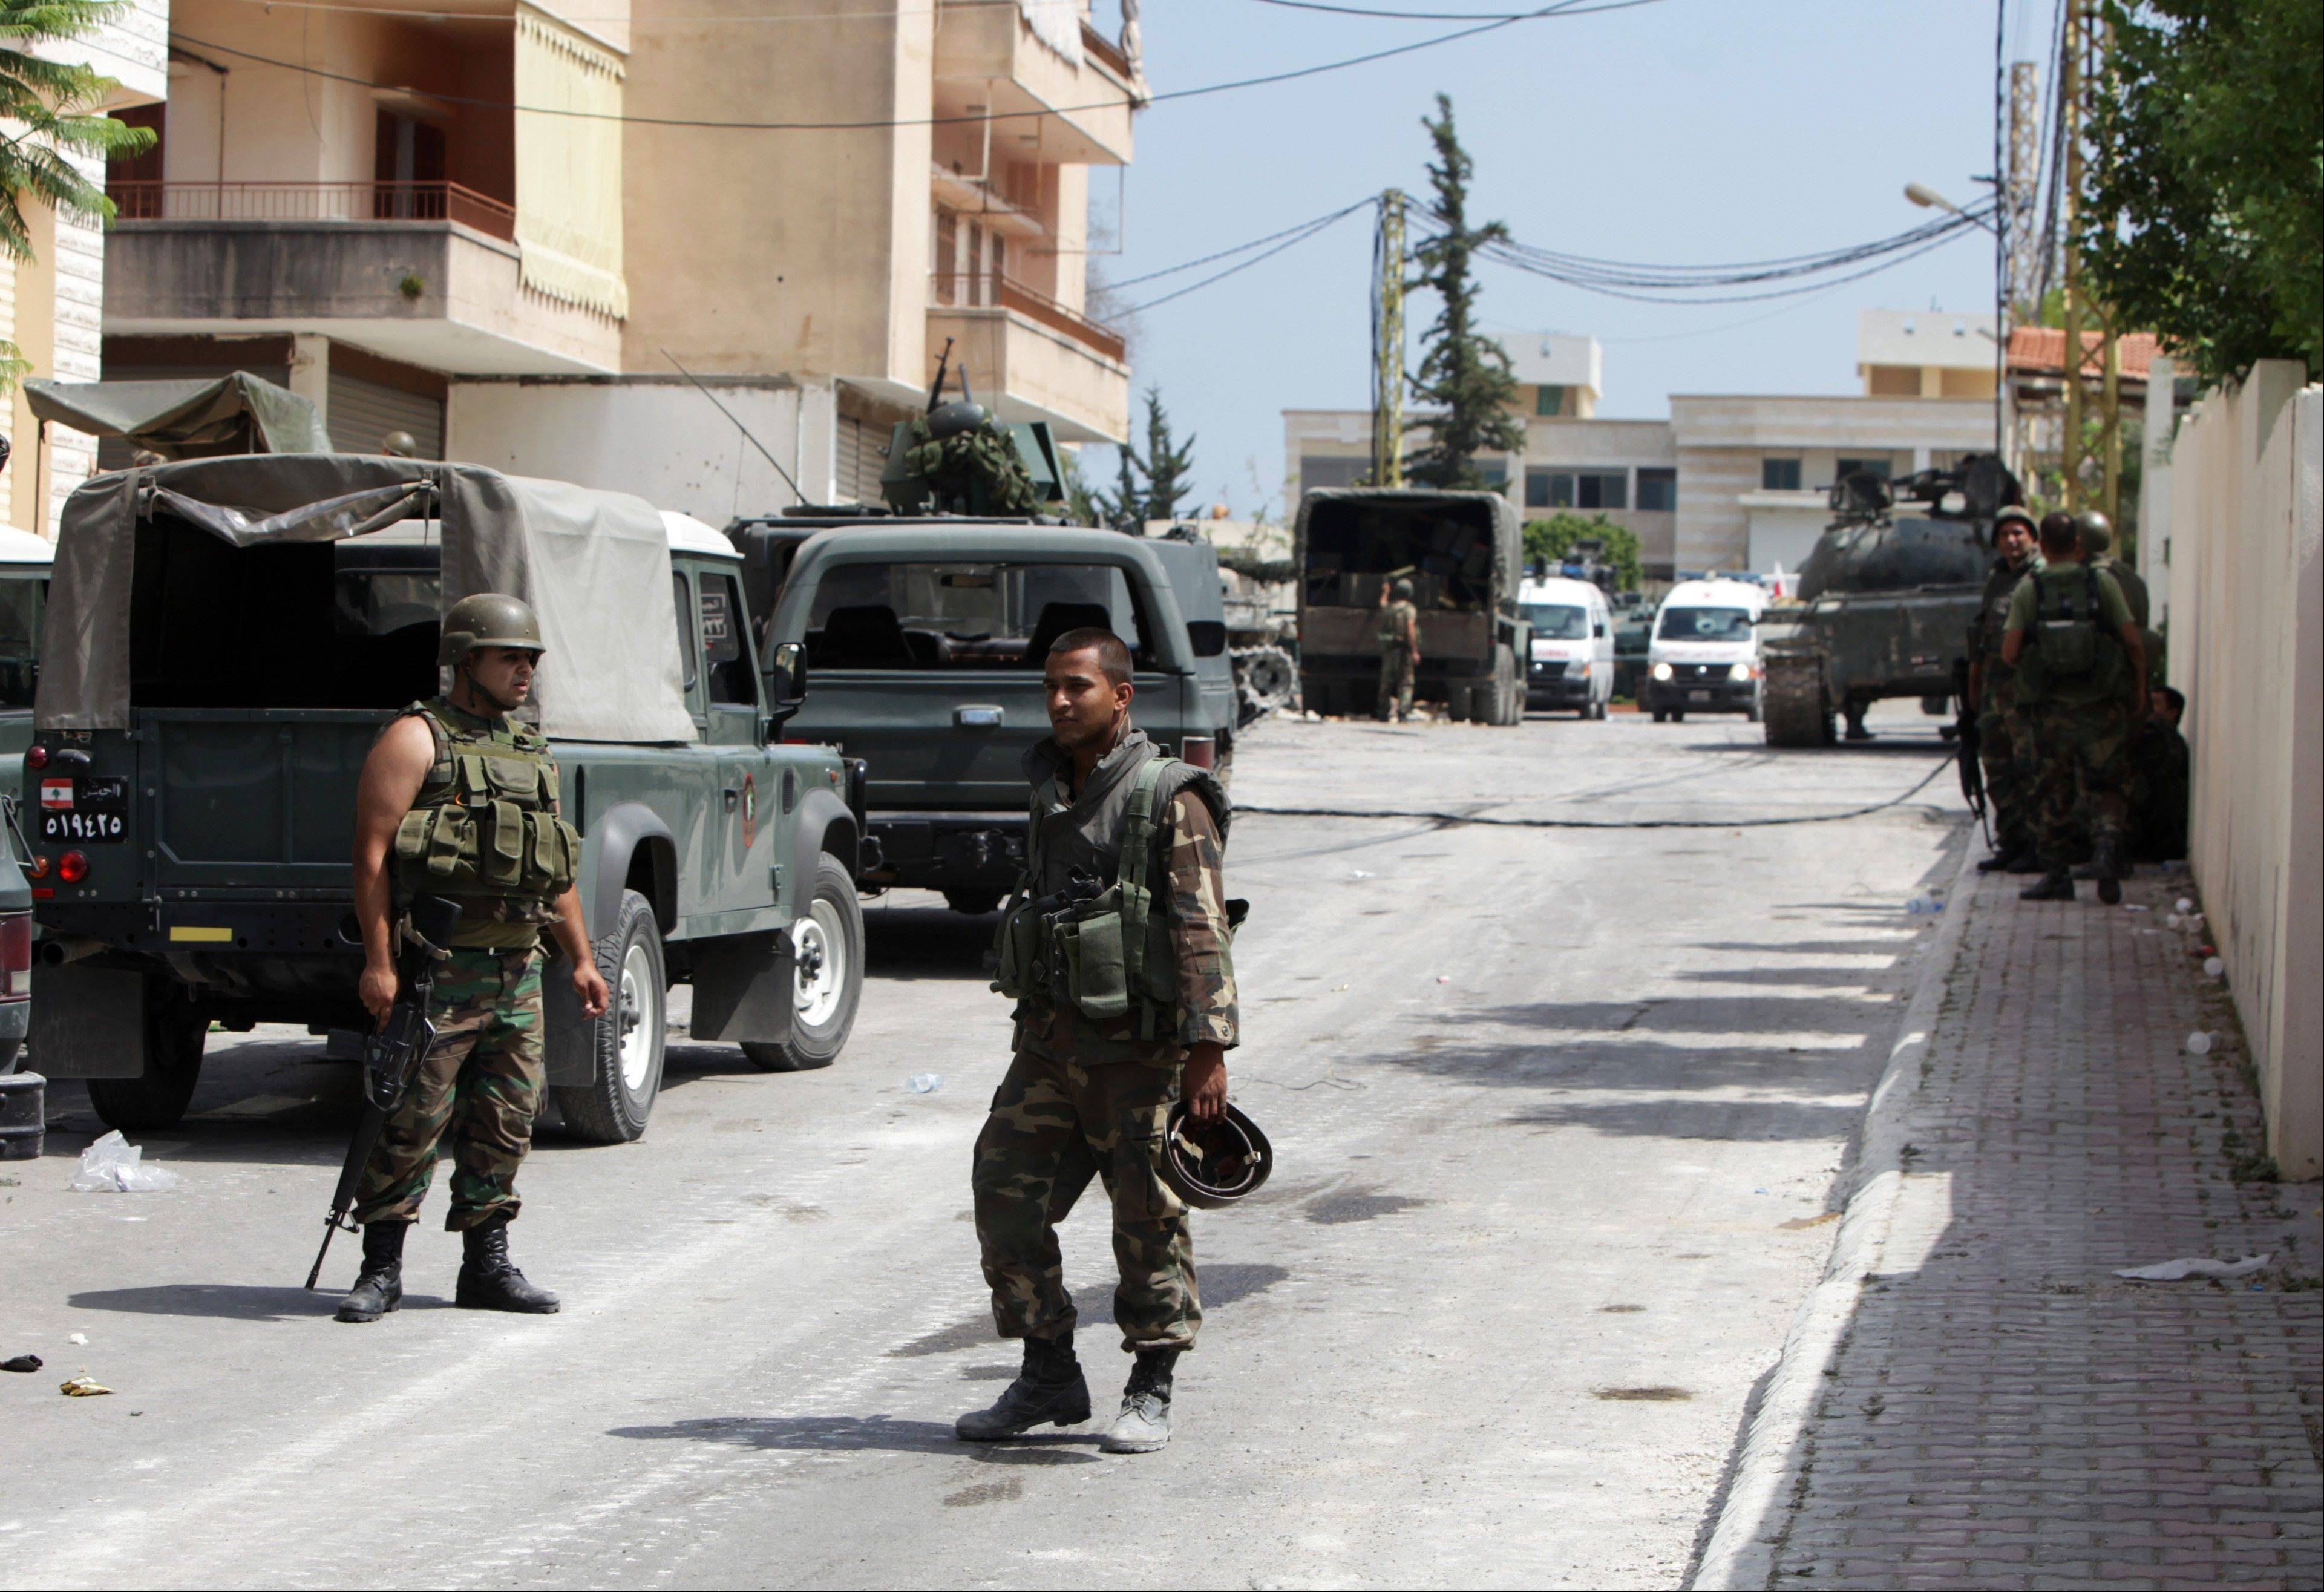 Lebanese Army soldiers monitor during clashes that erupted between followers of a radical Sunni cleric Sheik Ahmad al-Assir and Shiite gunmen in Sidon, Lebanon, Monday.